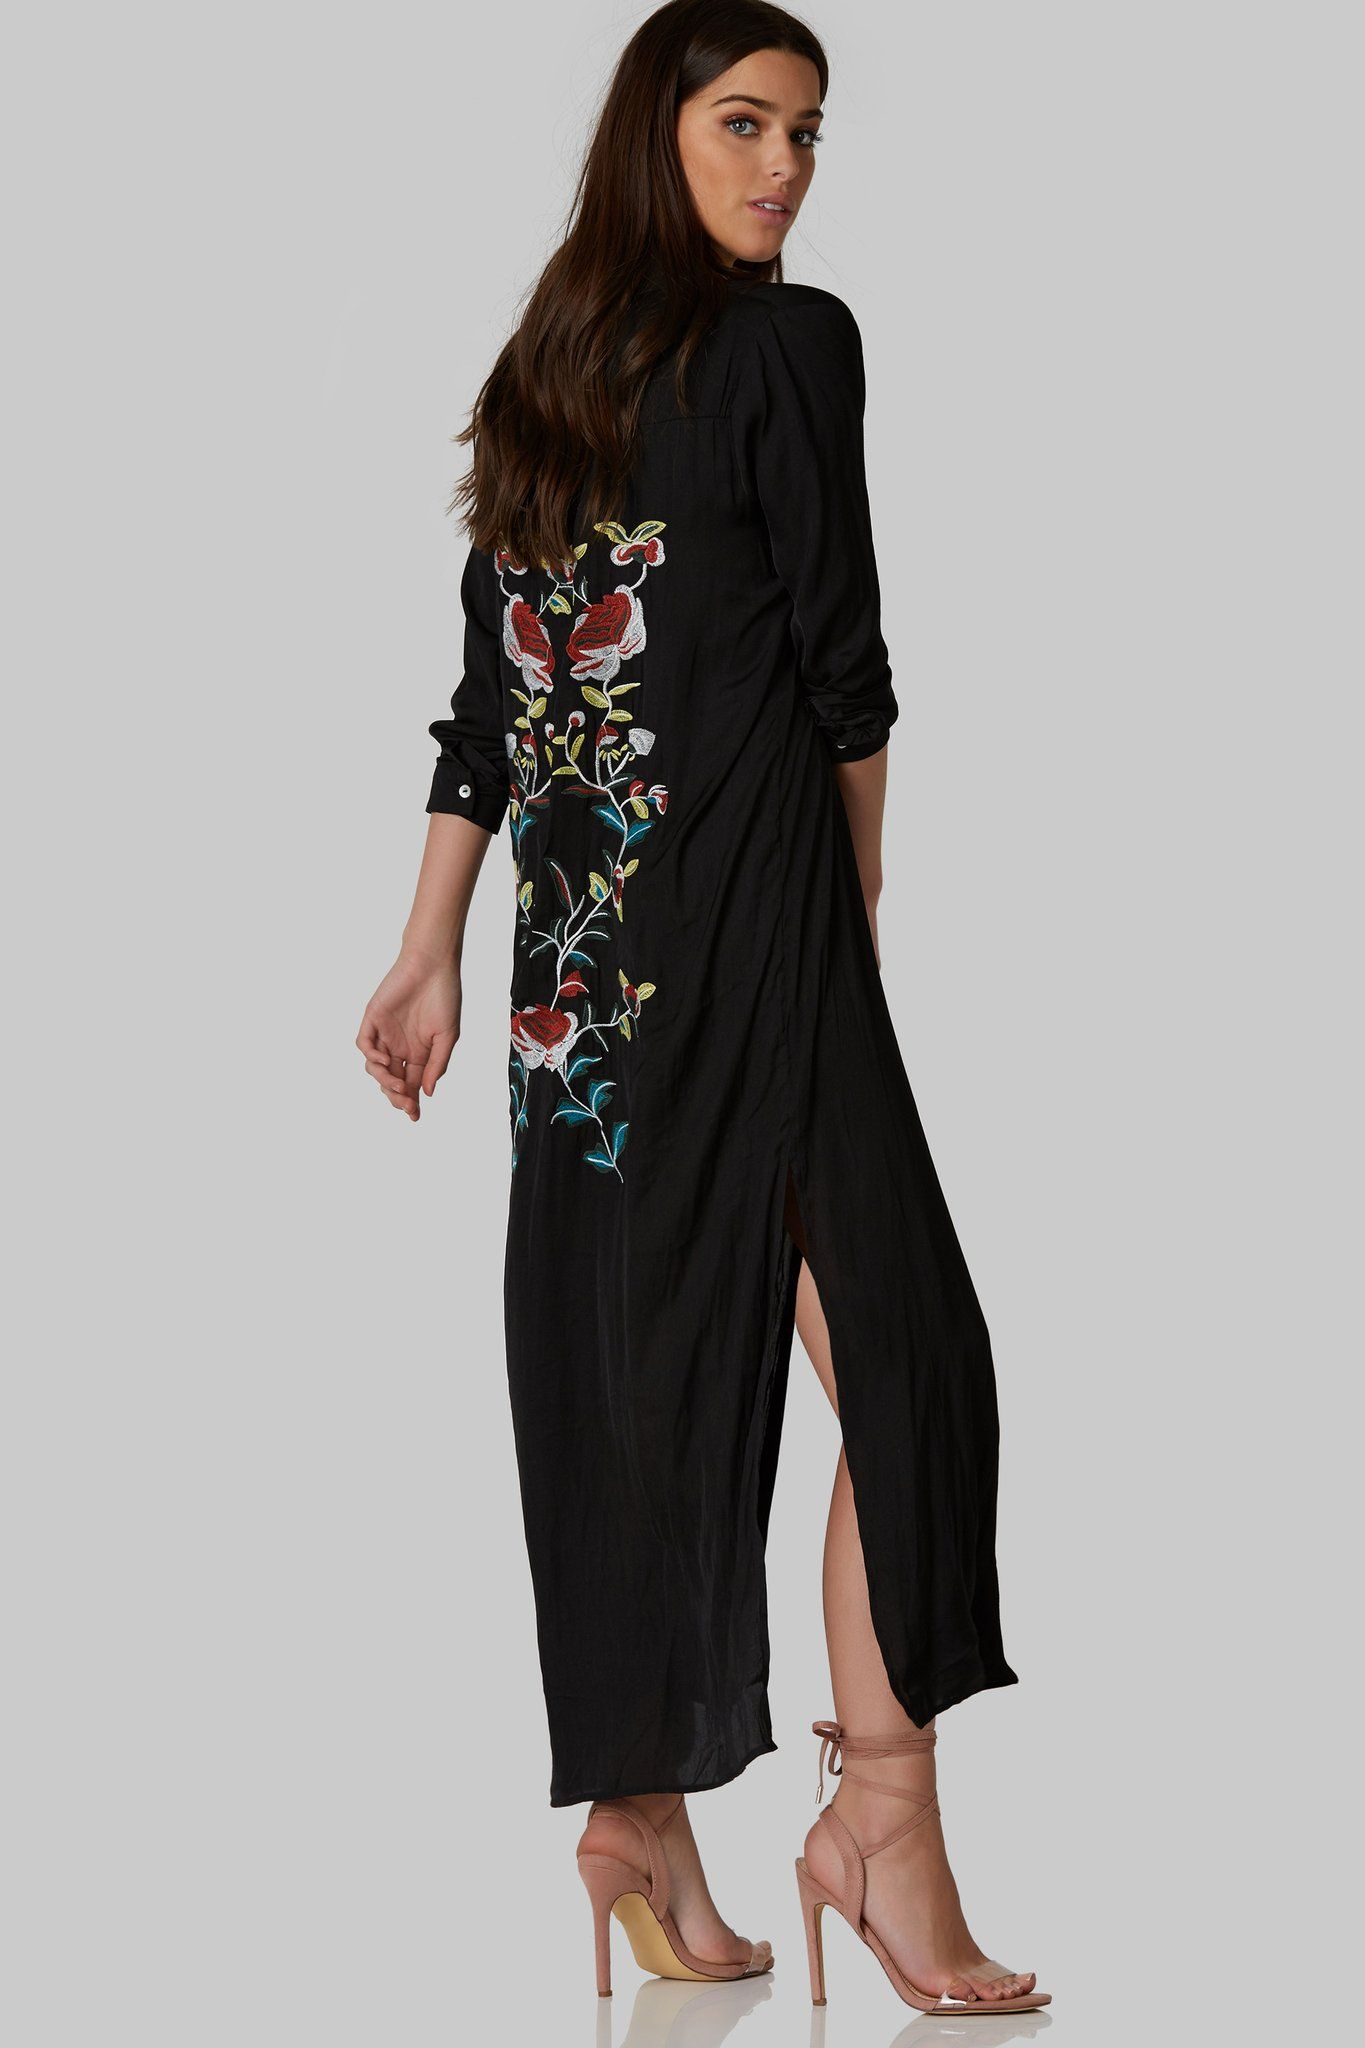 Stunning maxi dress made of comfy material intricate floral